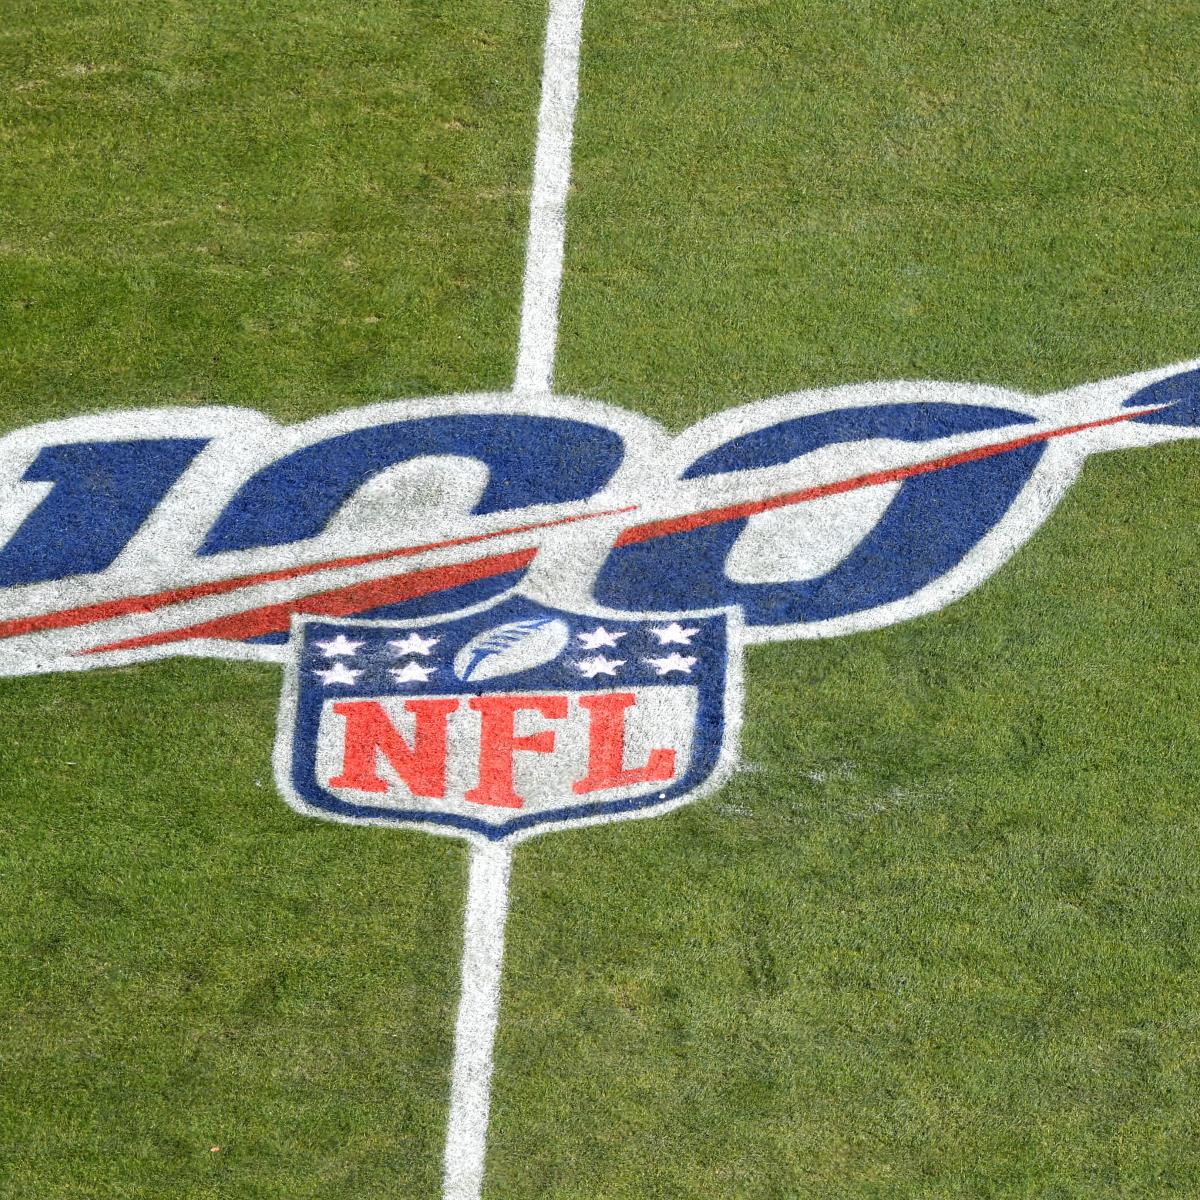 NFLPA Executive Committee Reportedly Votes 6-5 Against New CBA Proposal